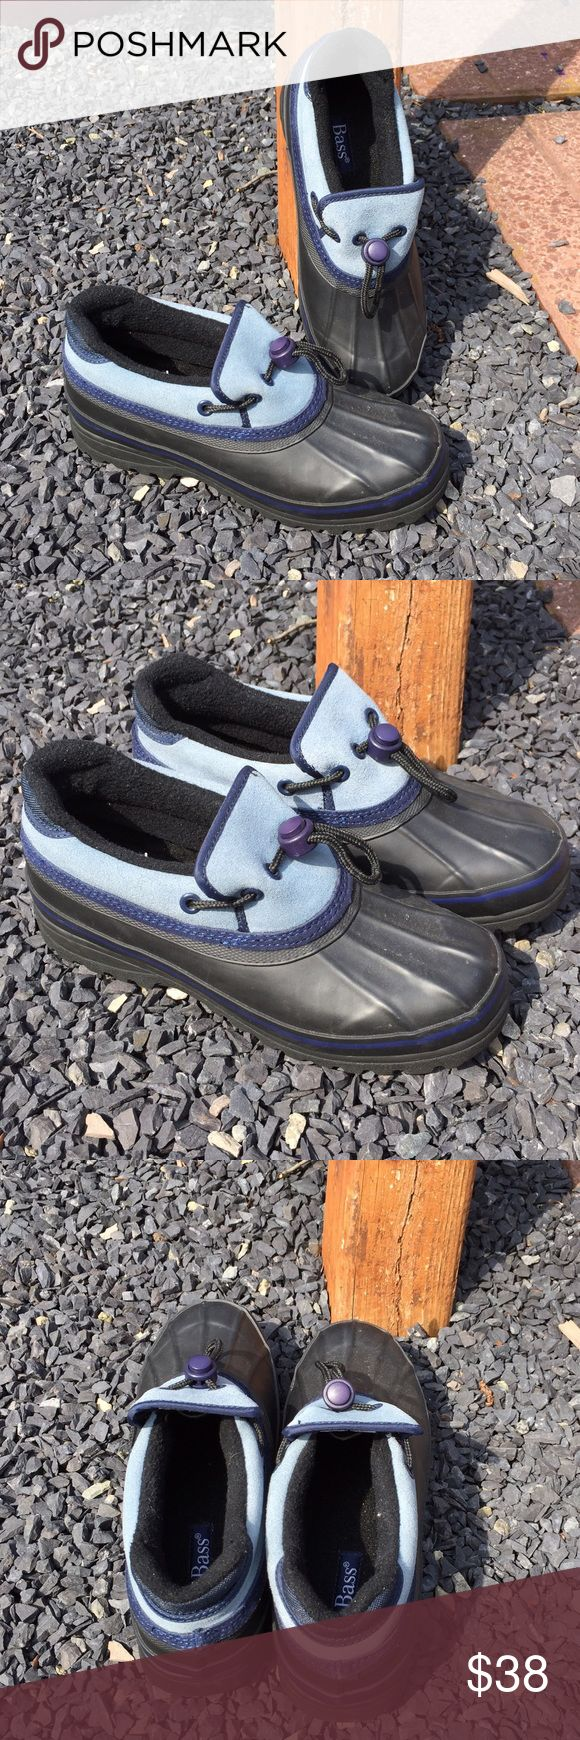 Bass Mud Muck Shoes Boots Size 8 Never Worn Size 8. Never worn.  Be sure to view the other items in our closet. We offer both women's and Mens items in a variety of sizes. Bundle and save!! Thank you for viewing our item!! Bass Shoes